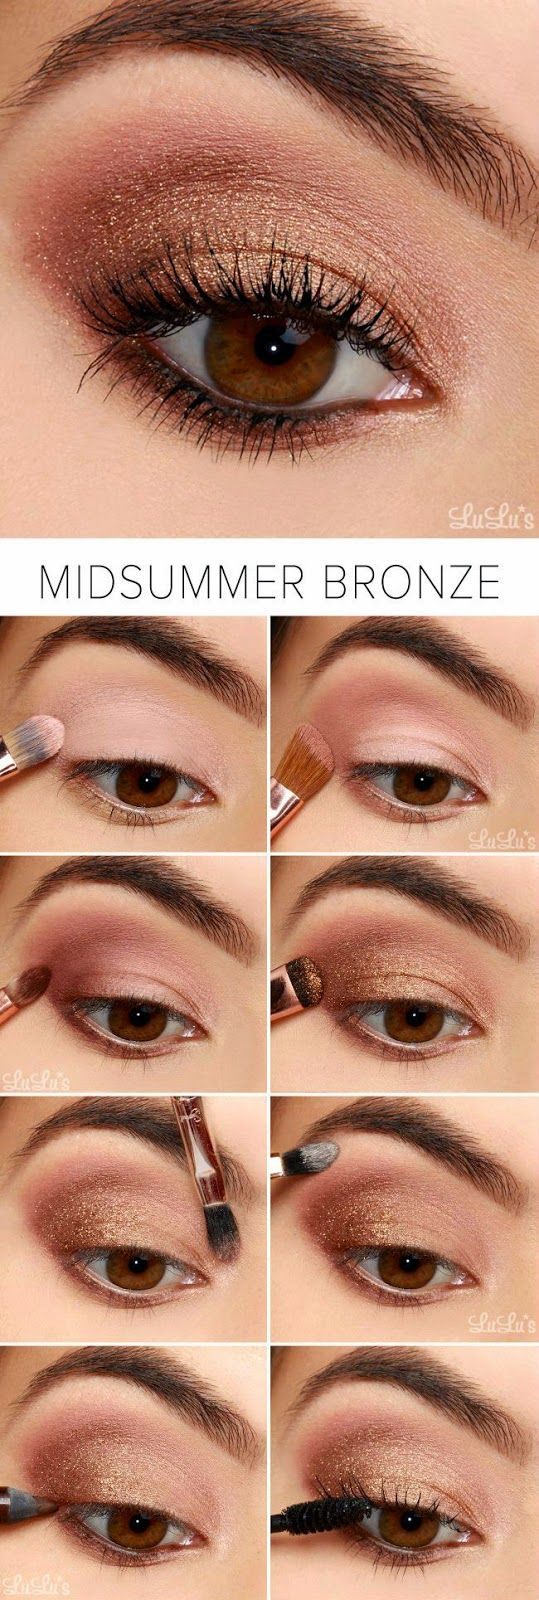 Latest Summer Makeup Ideas & Trends 9-9 Beauty Tips